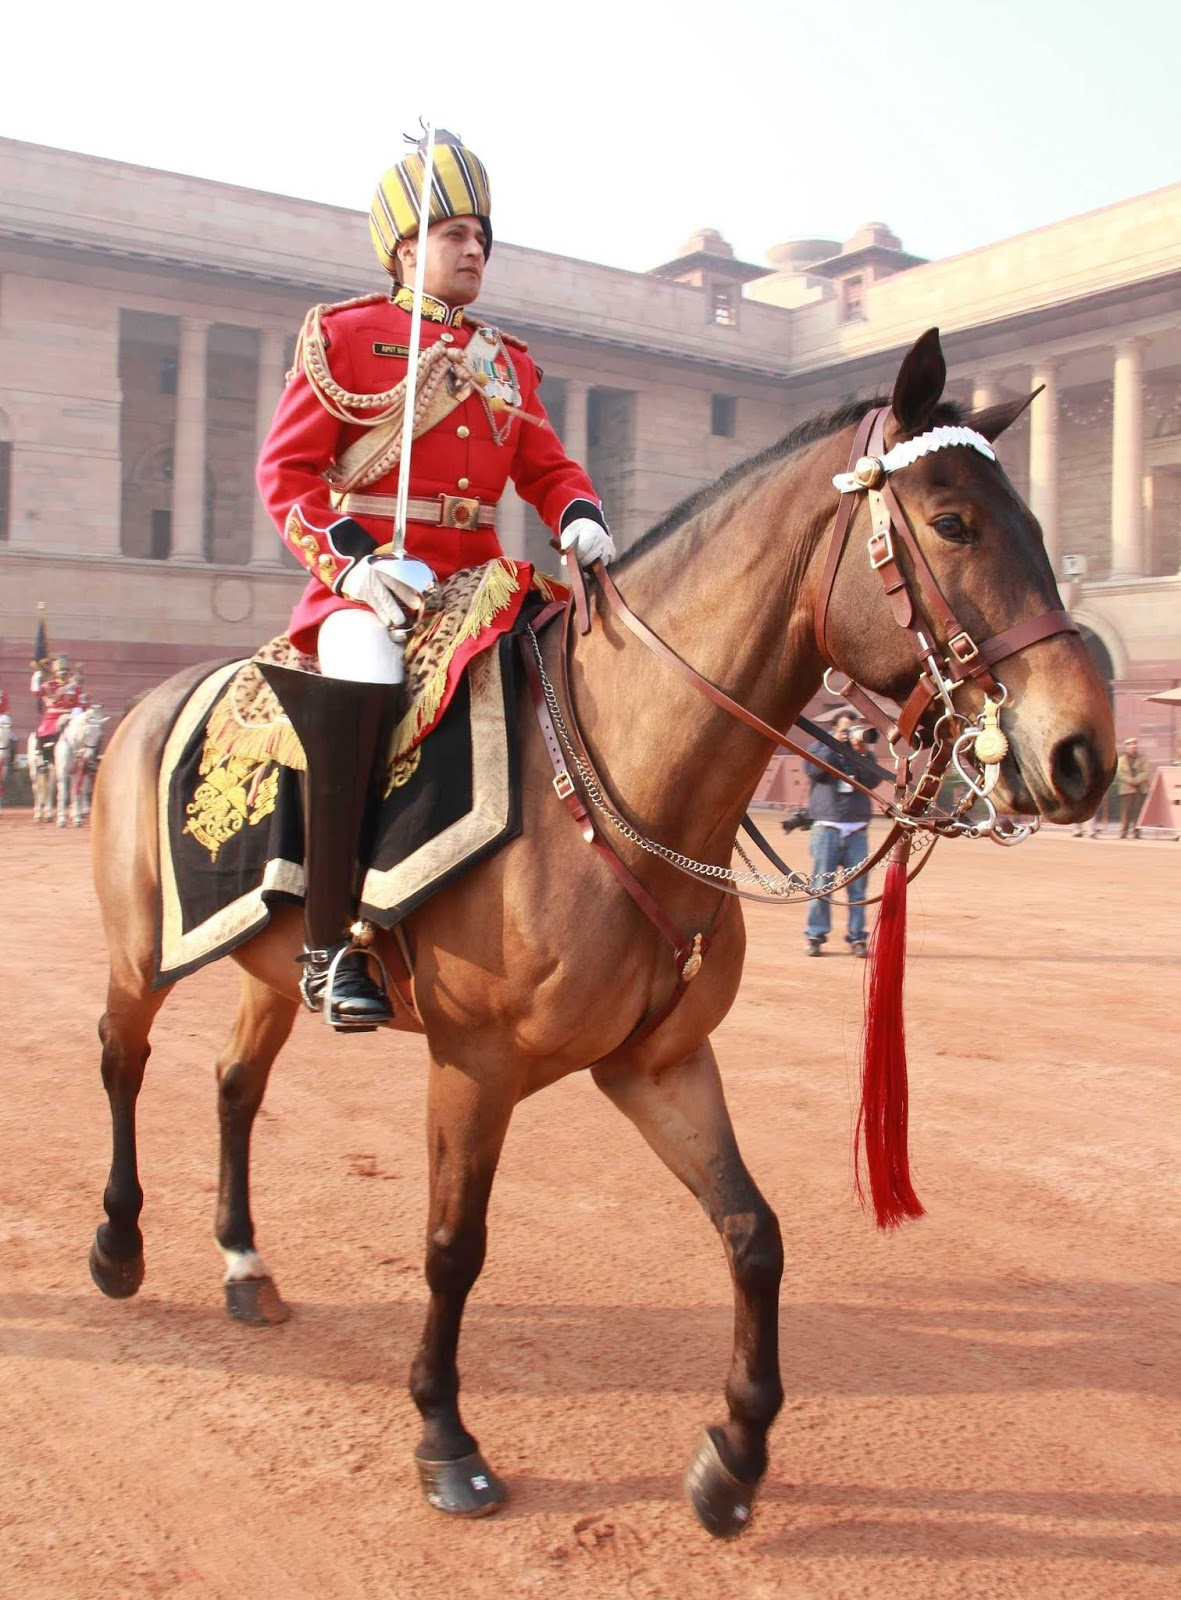 The President's Bodygaurds | Why only Rajputs, Jat Sikhs and